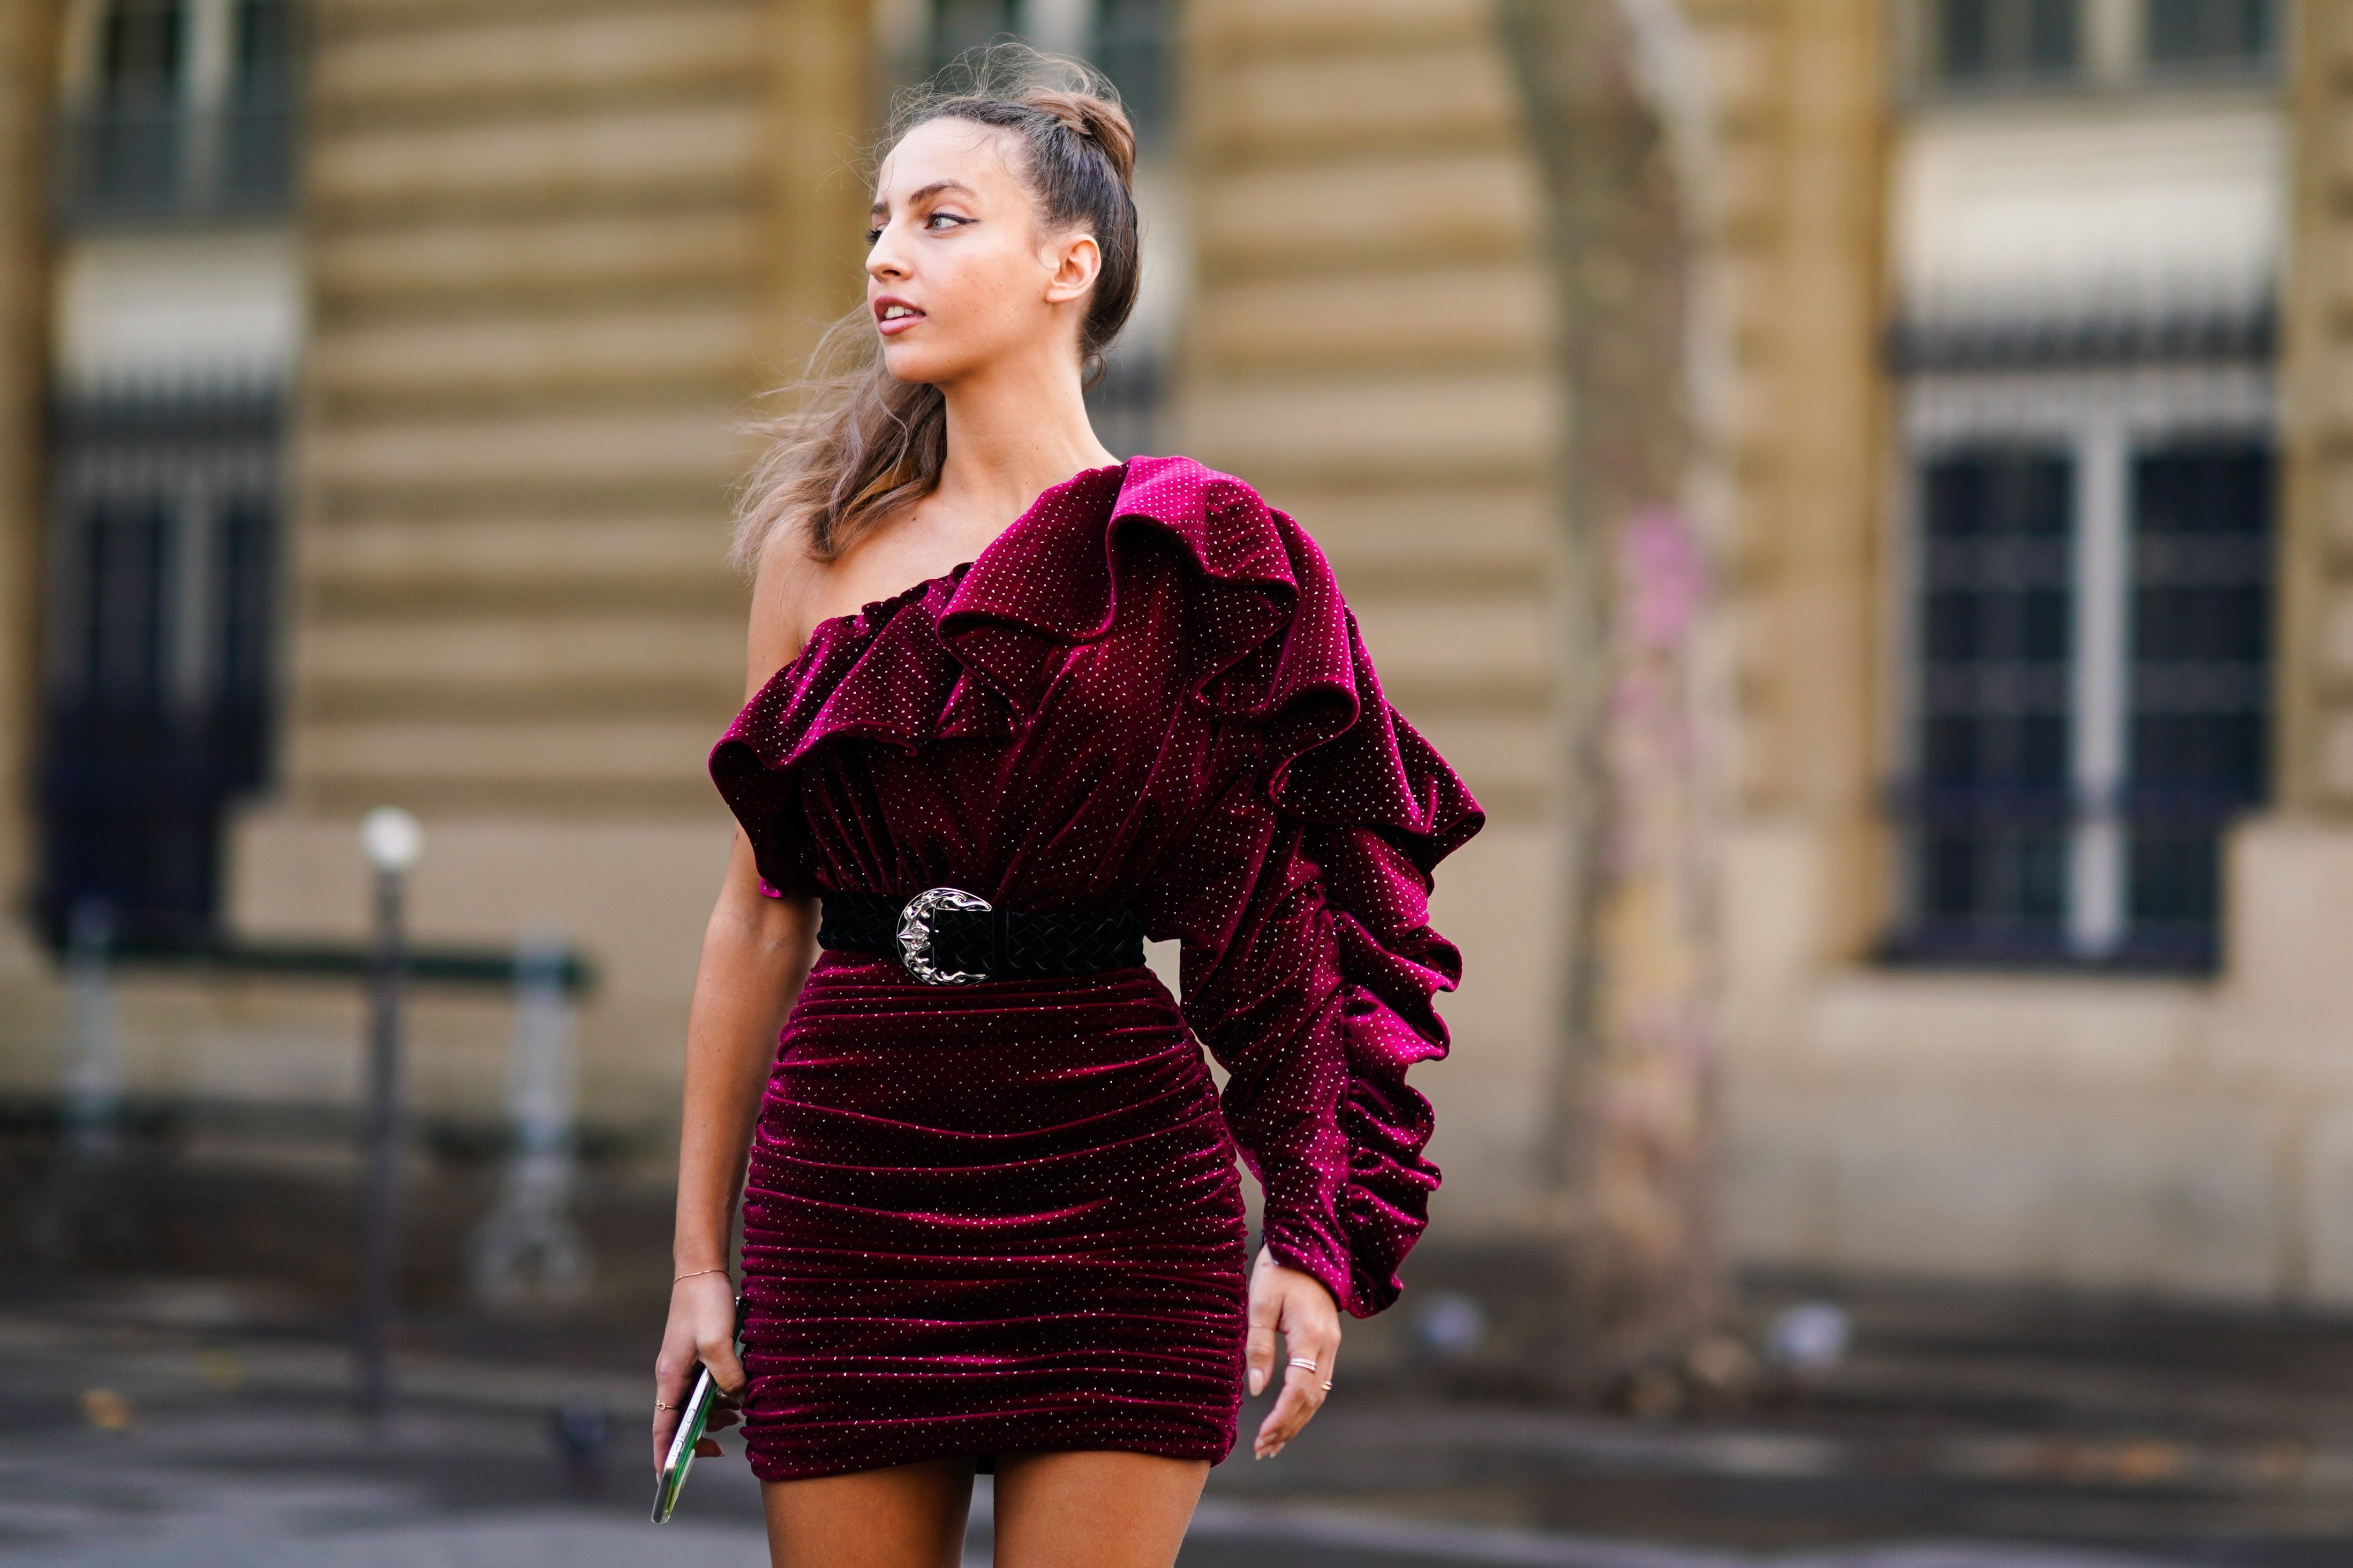 new year s eve outfit ideas what to wear for new year s eve new year s eve outfit ideas what to